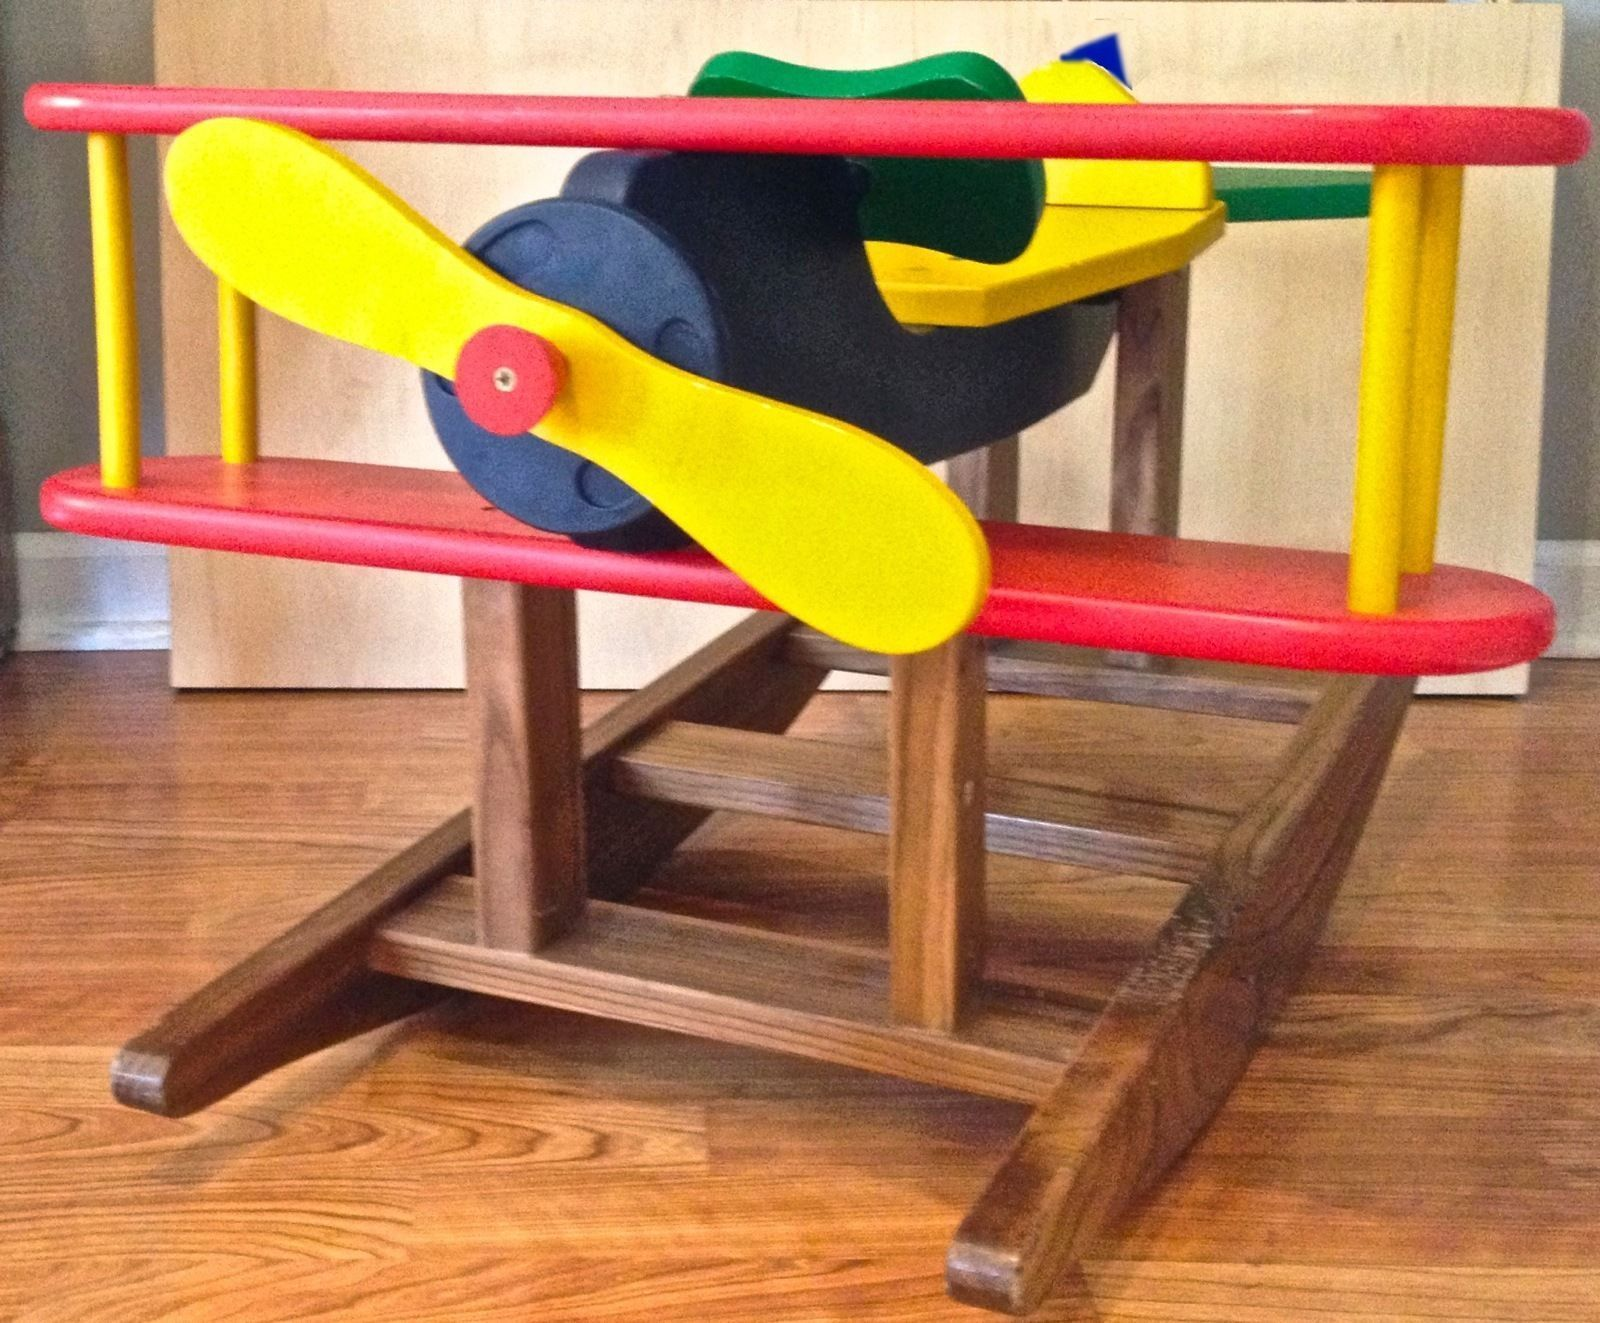 Kids Wooden Rocking Airplane Designed By Robert McClough Up for